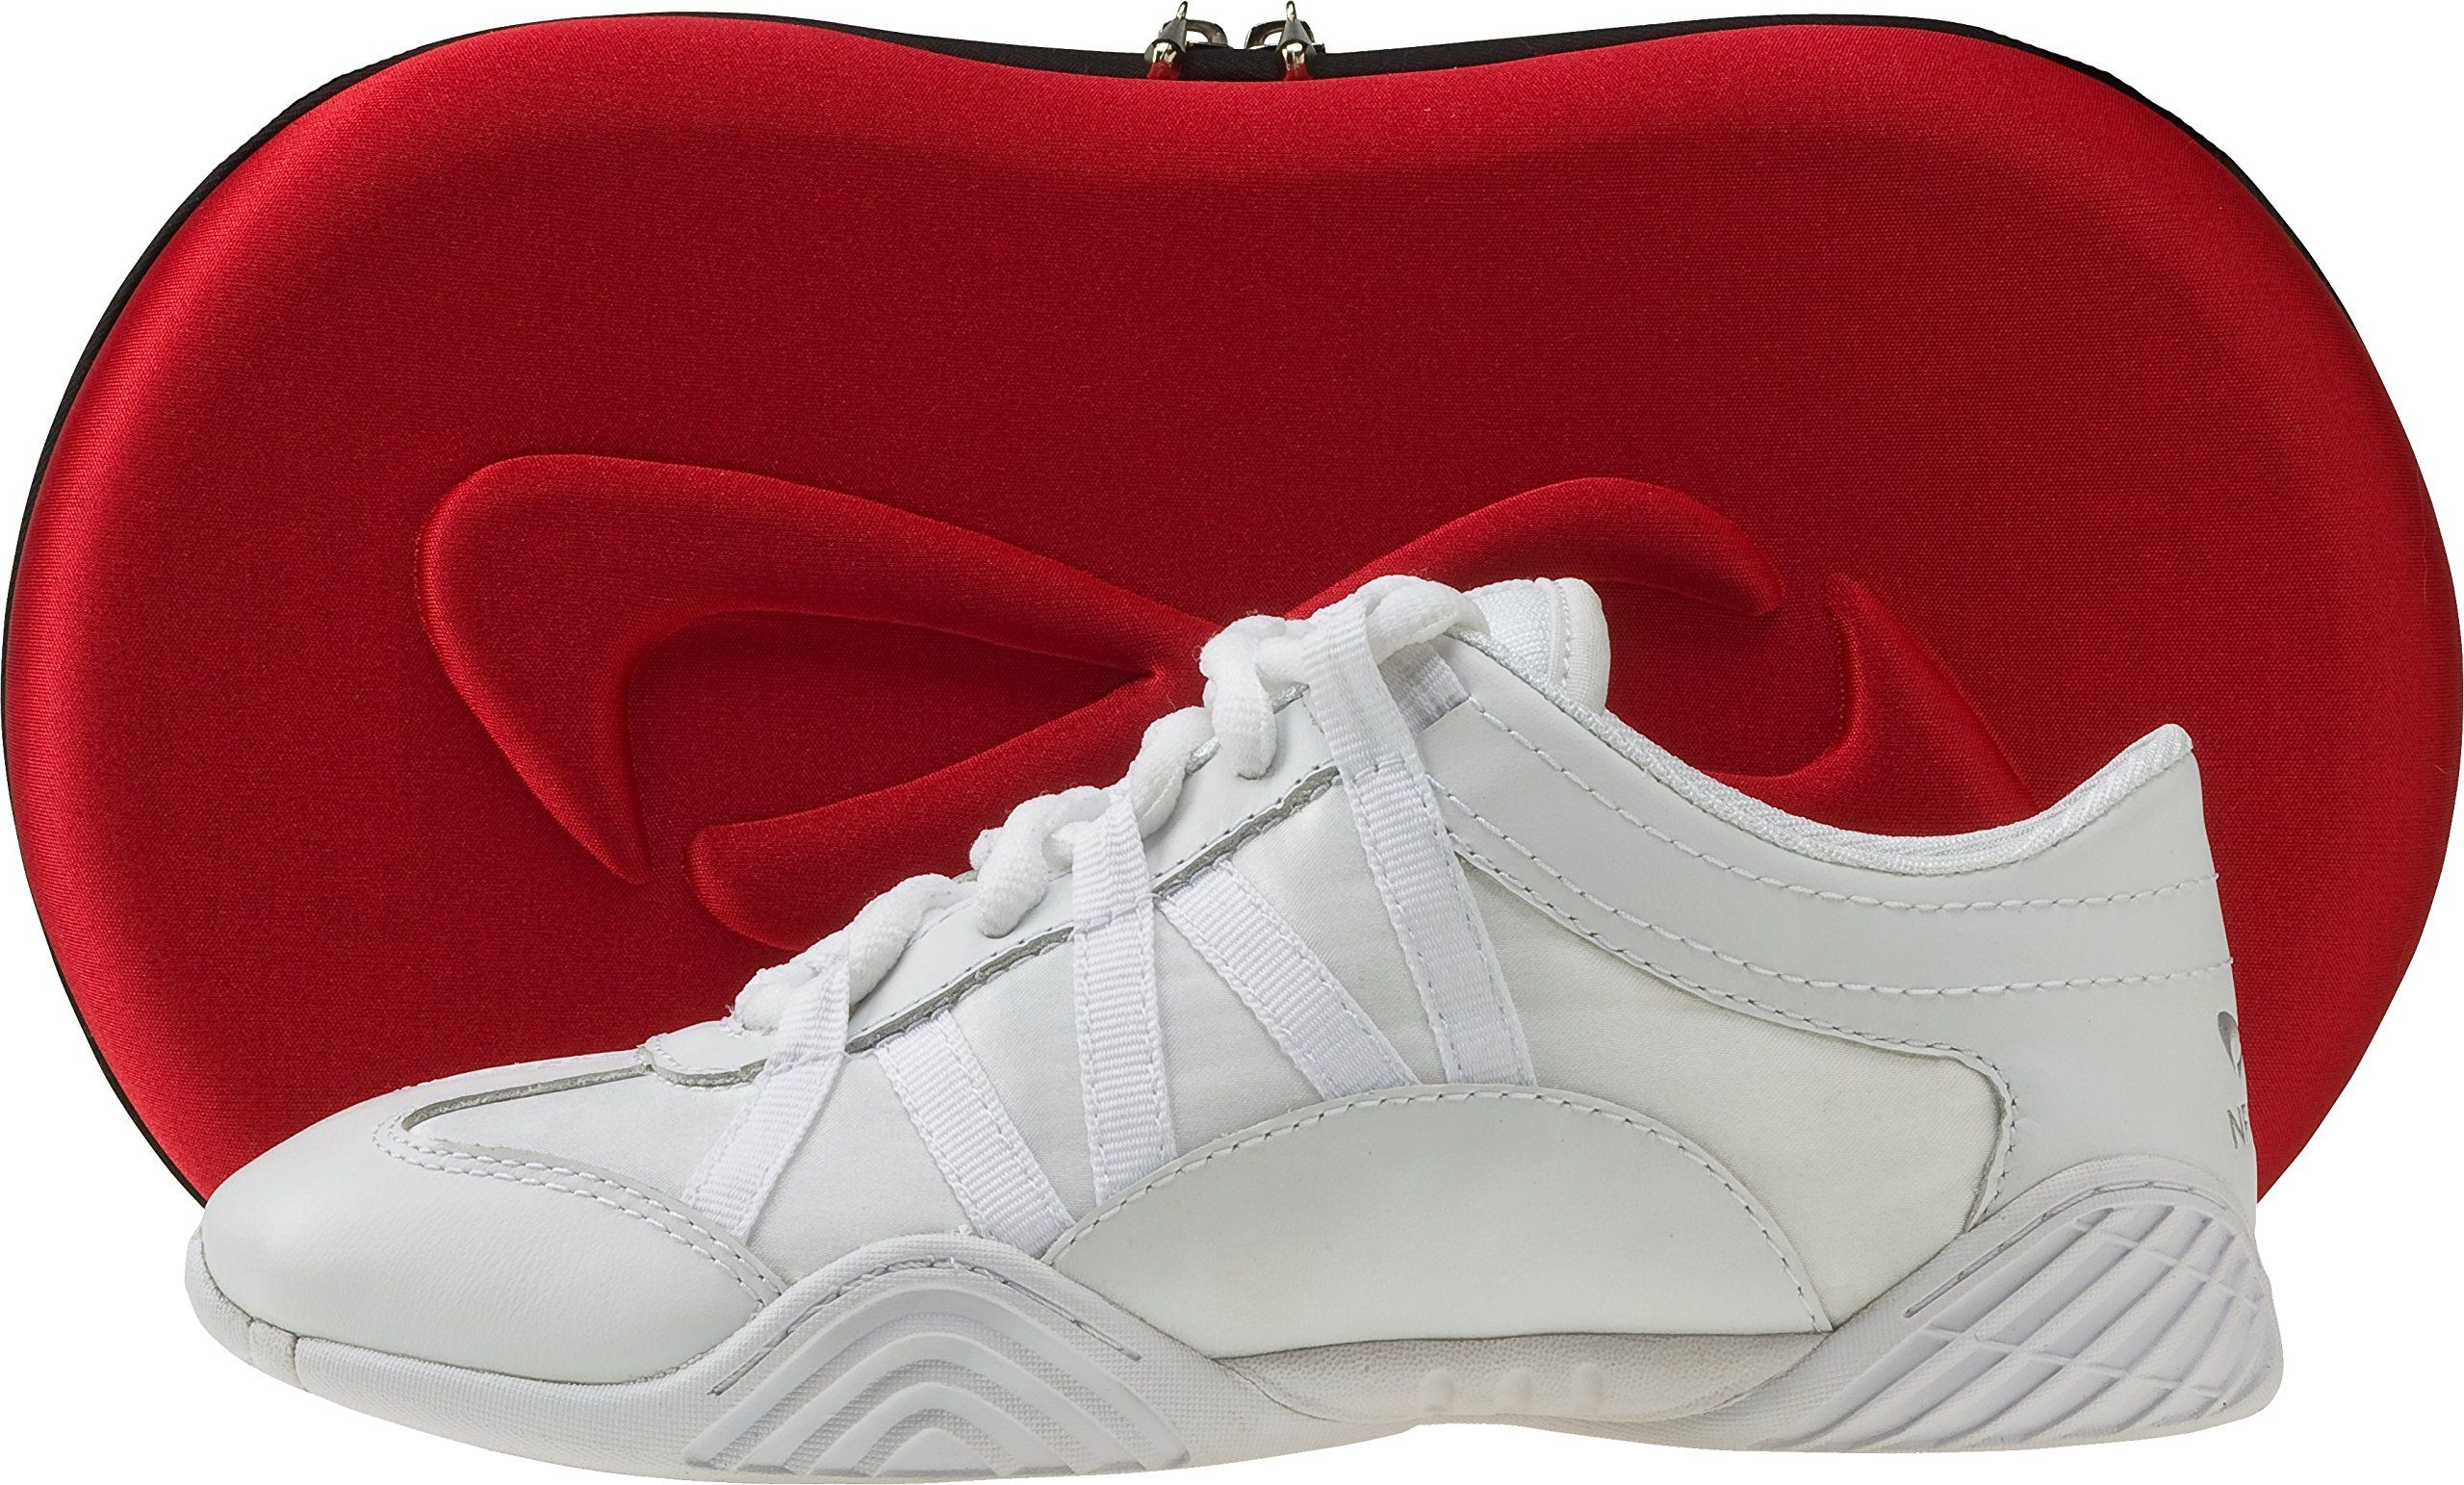 Nfinity-Youth-Evolution-Cheer-Shoes in